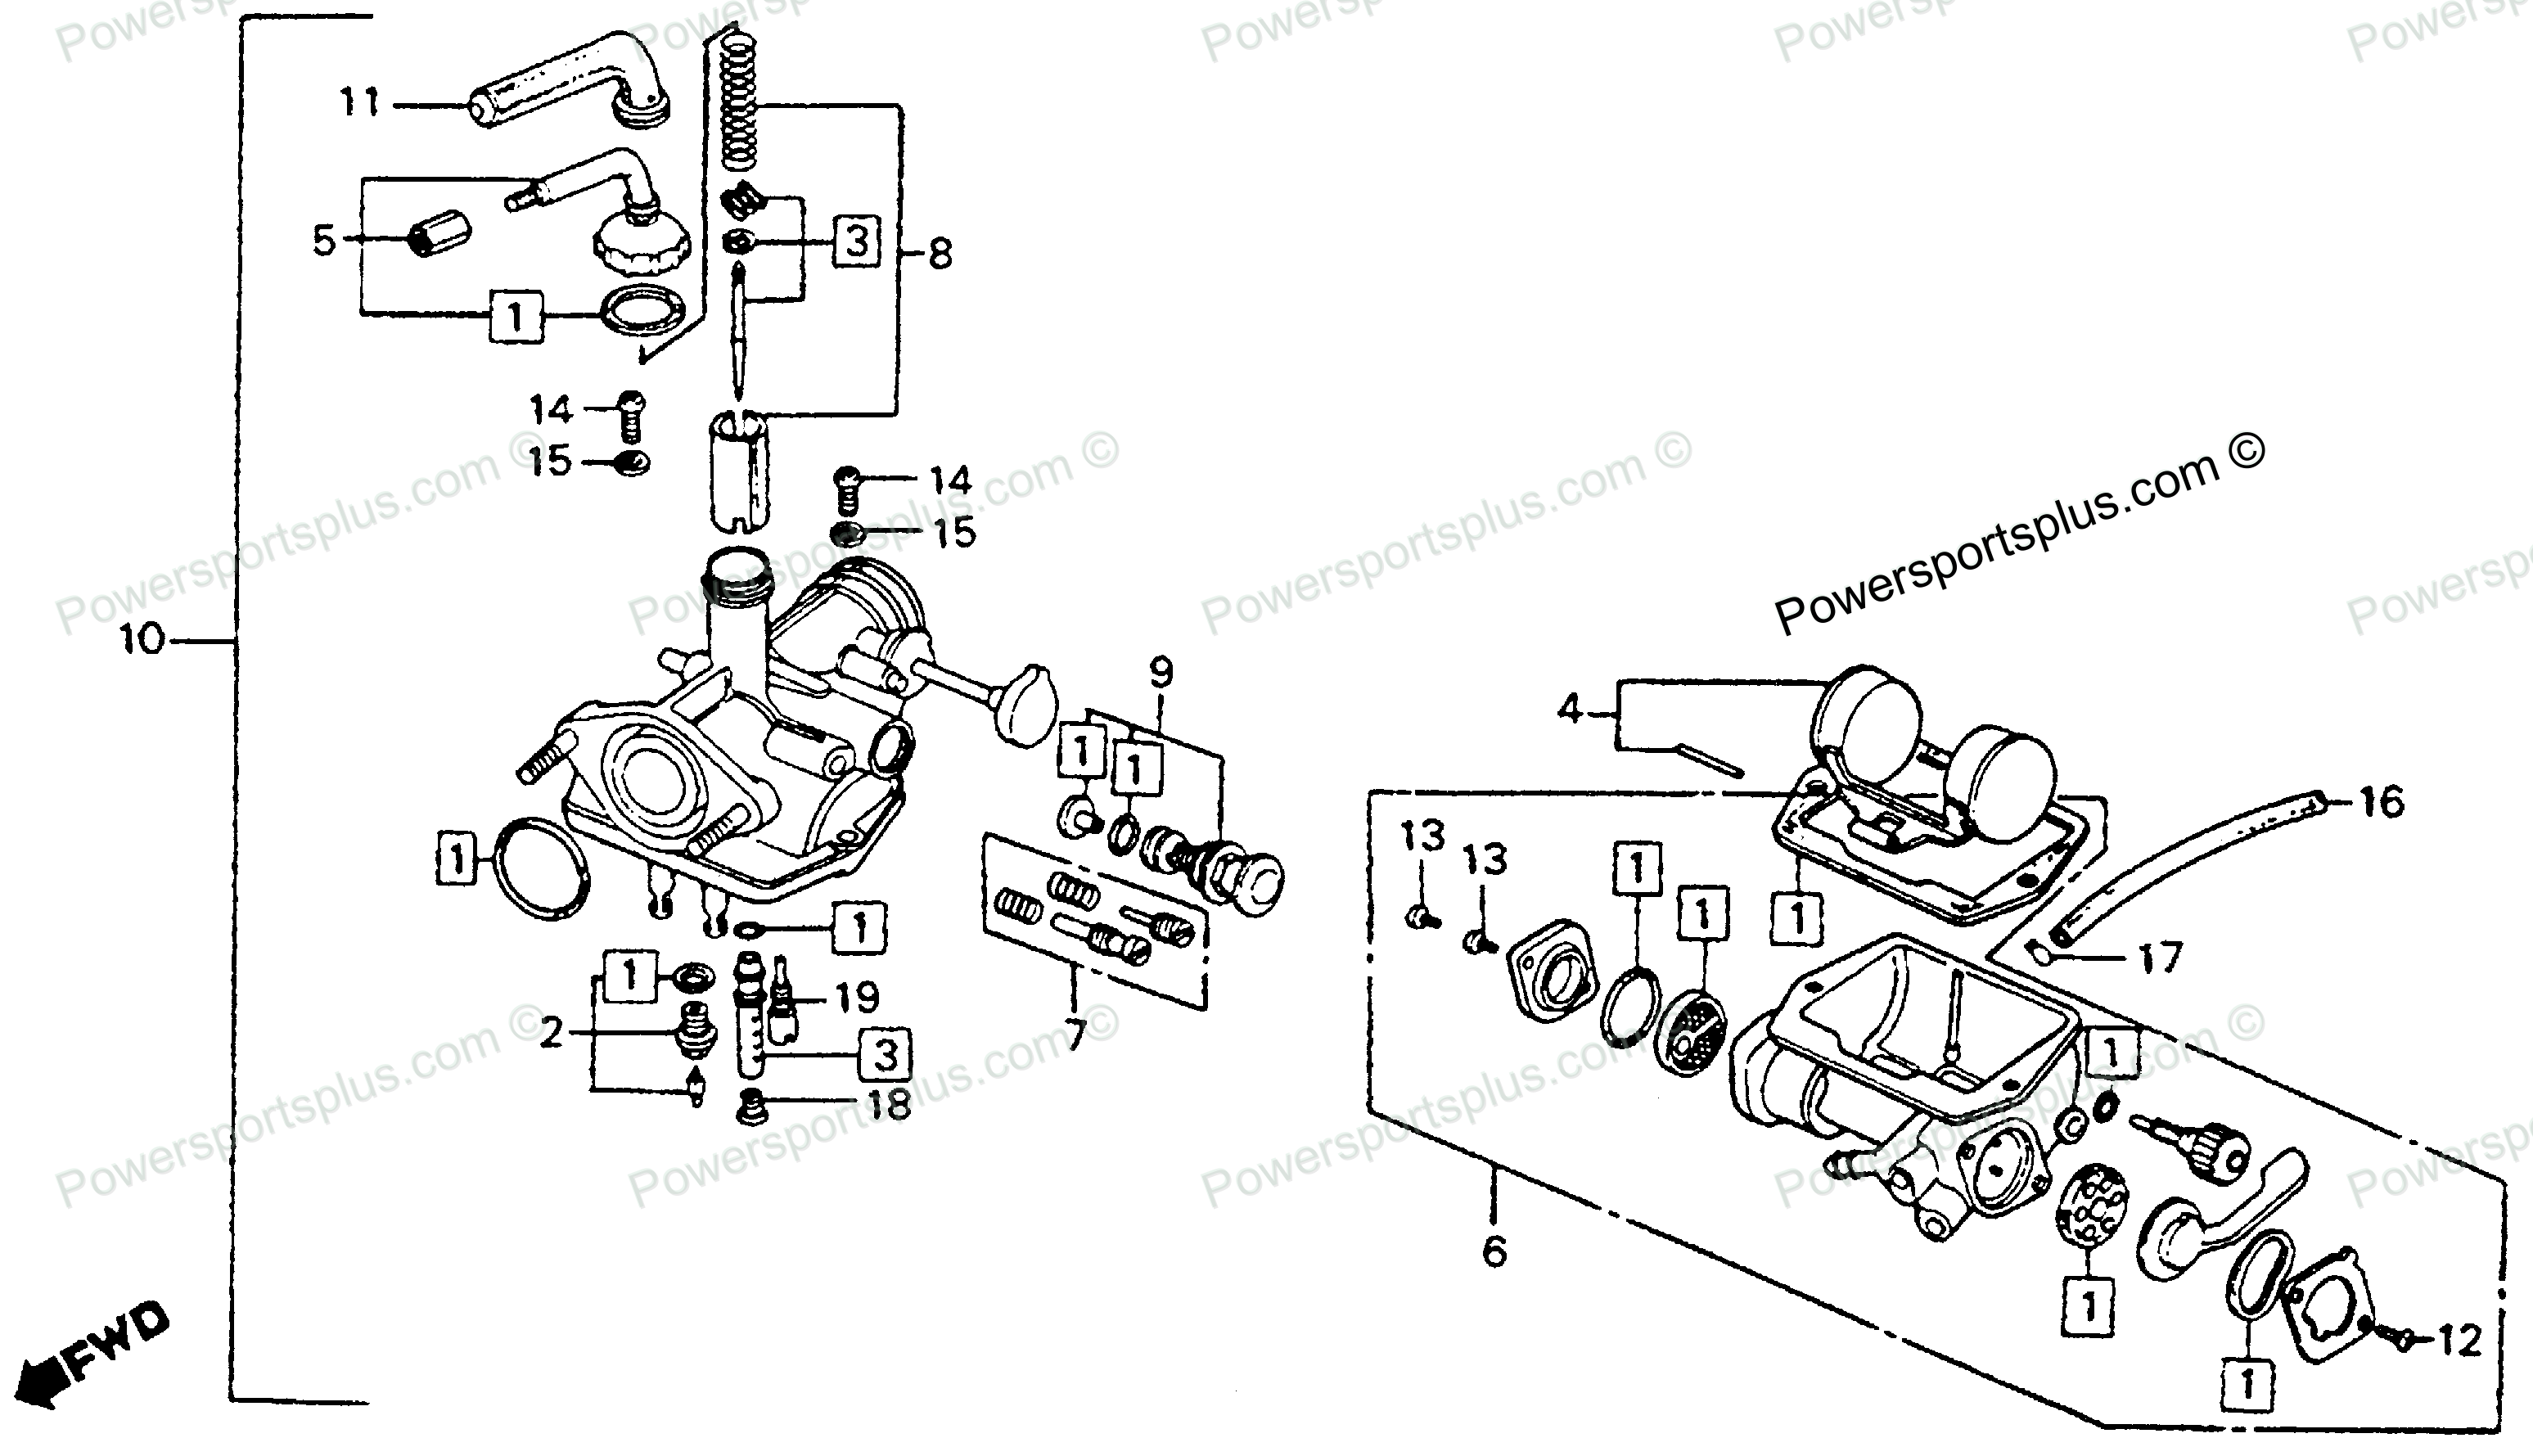 1975 Honda Ct90 Wiring Diagram Photoelectric Switch Of Motorcycle Parts 1976 A Carburetor